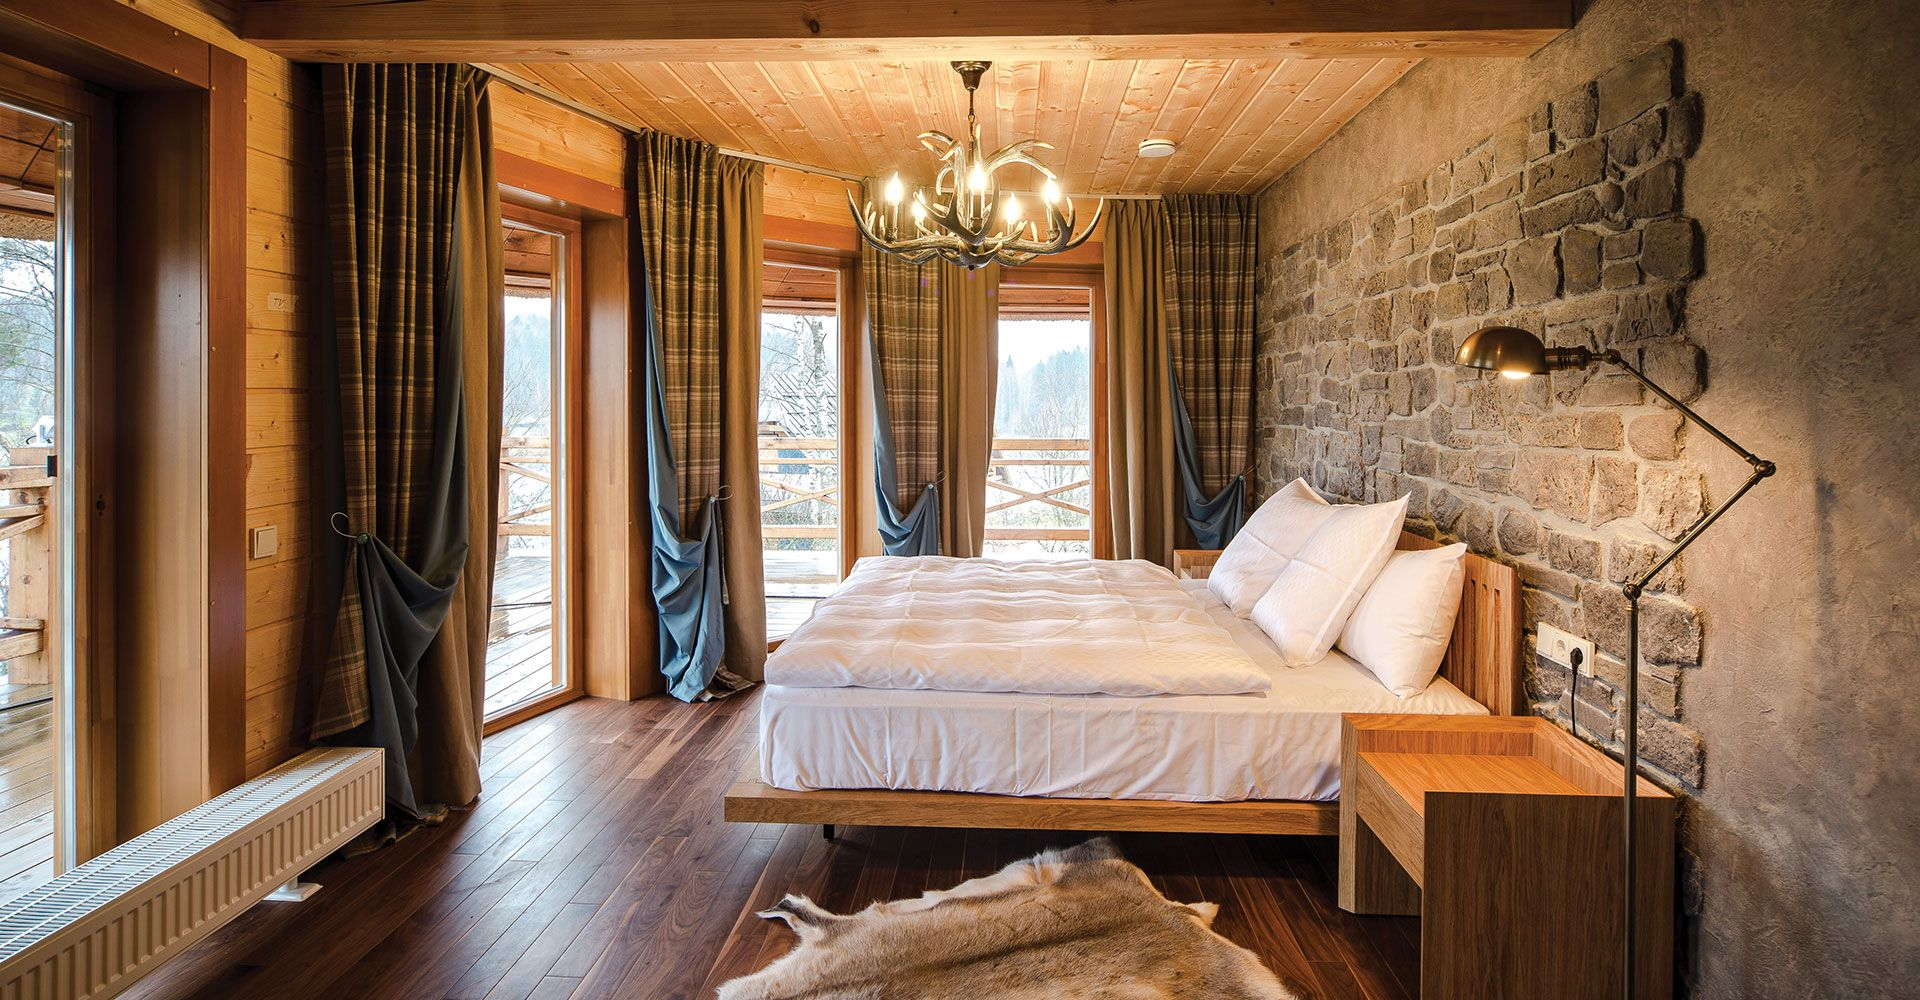 Online Proposals For Hotels Modern Rustic Bedrooms Modern Bedroom Decor Rustic Bedroom